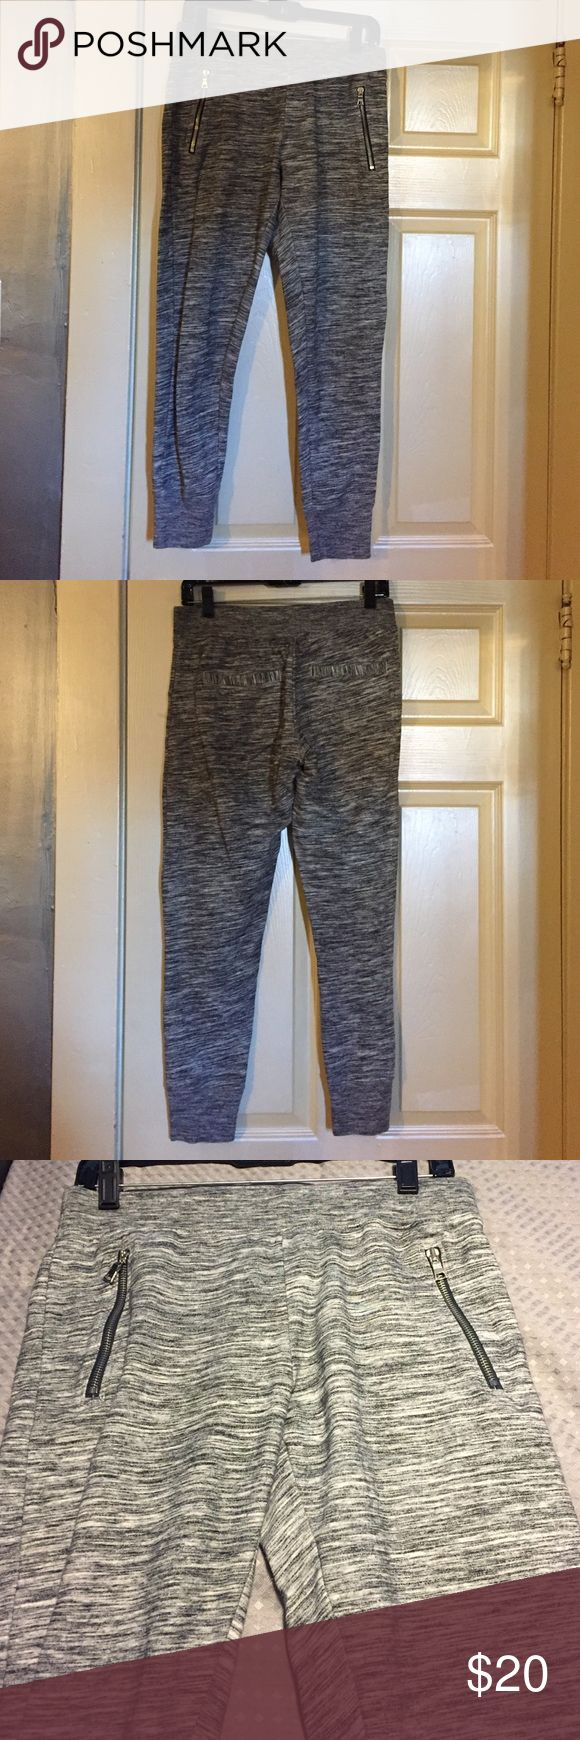 Black and White Joggers Black and white Joggers with zipper front pockets and regular back pockets. Inside tag removed. GAP Pants Track Pants & Joggers